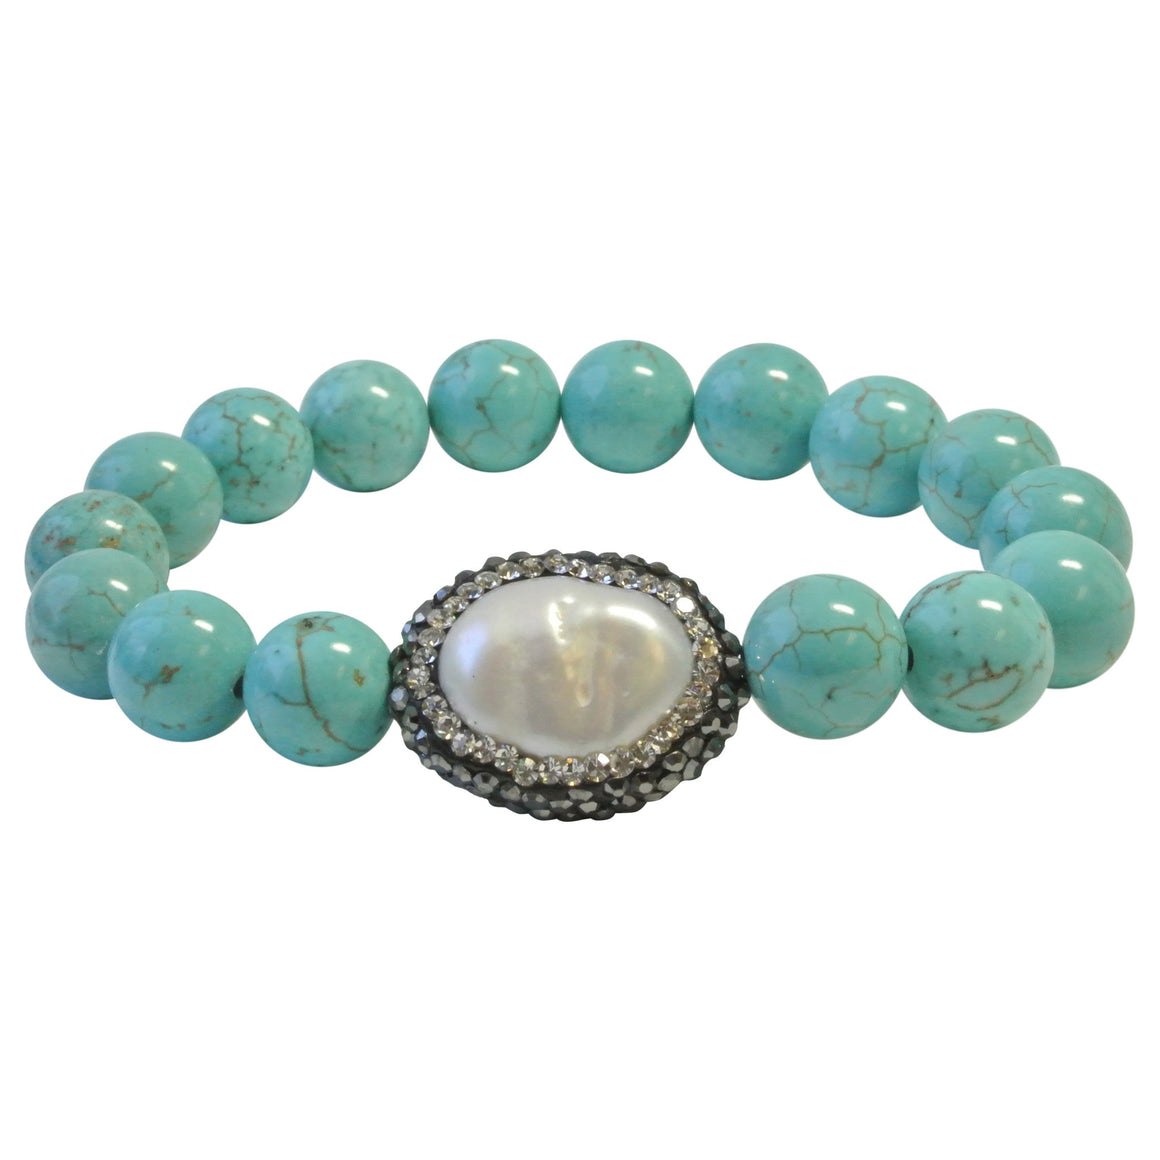 The Ovarian Cancer Awareness Bracelet